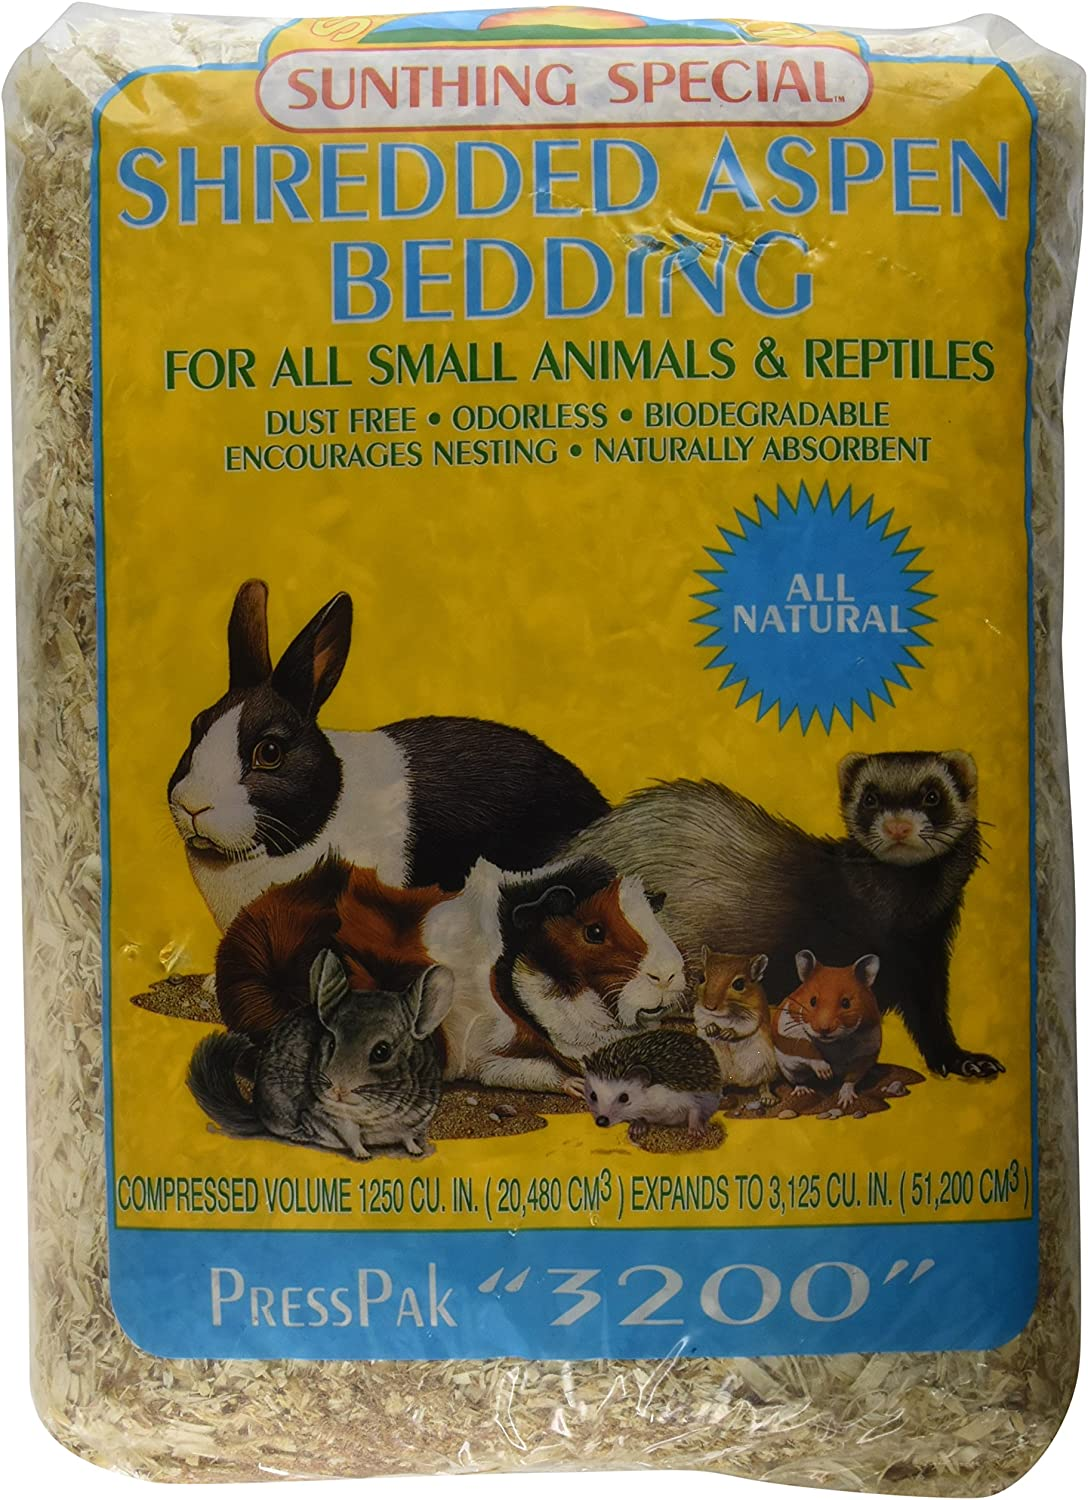 Sun Seed Company SSS18073 Shredded Aspen Press Pack Small Animal Bedding, 3200 Cubic Inch, Pack of 4